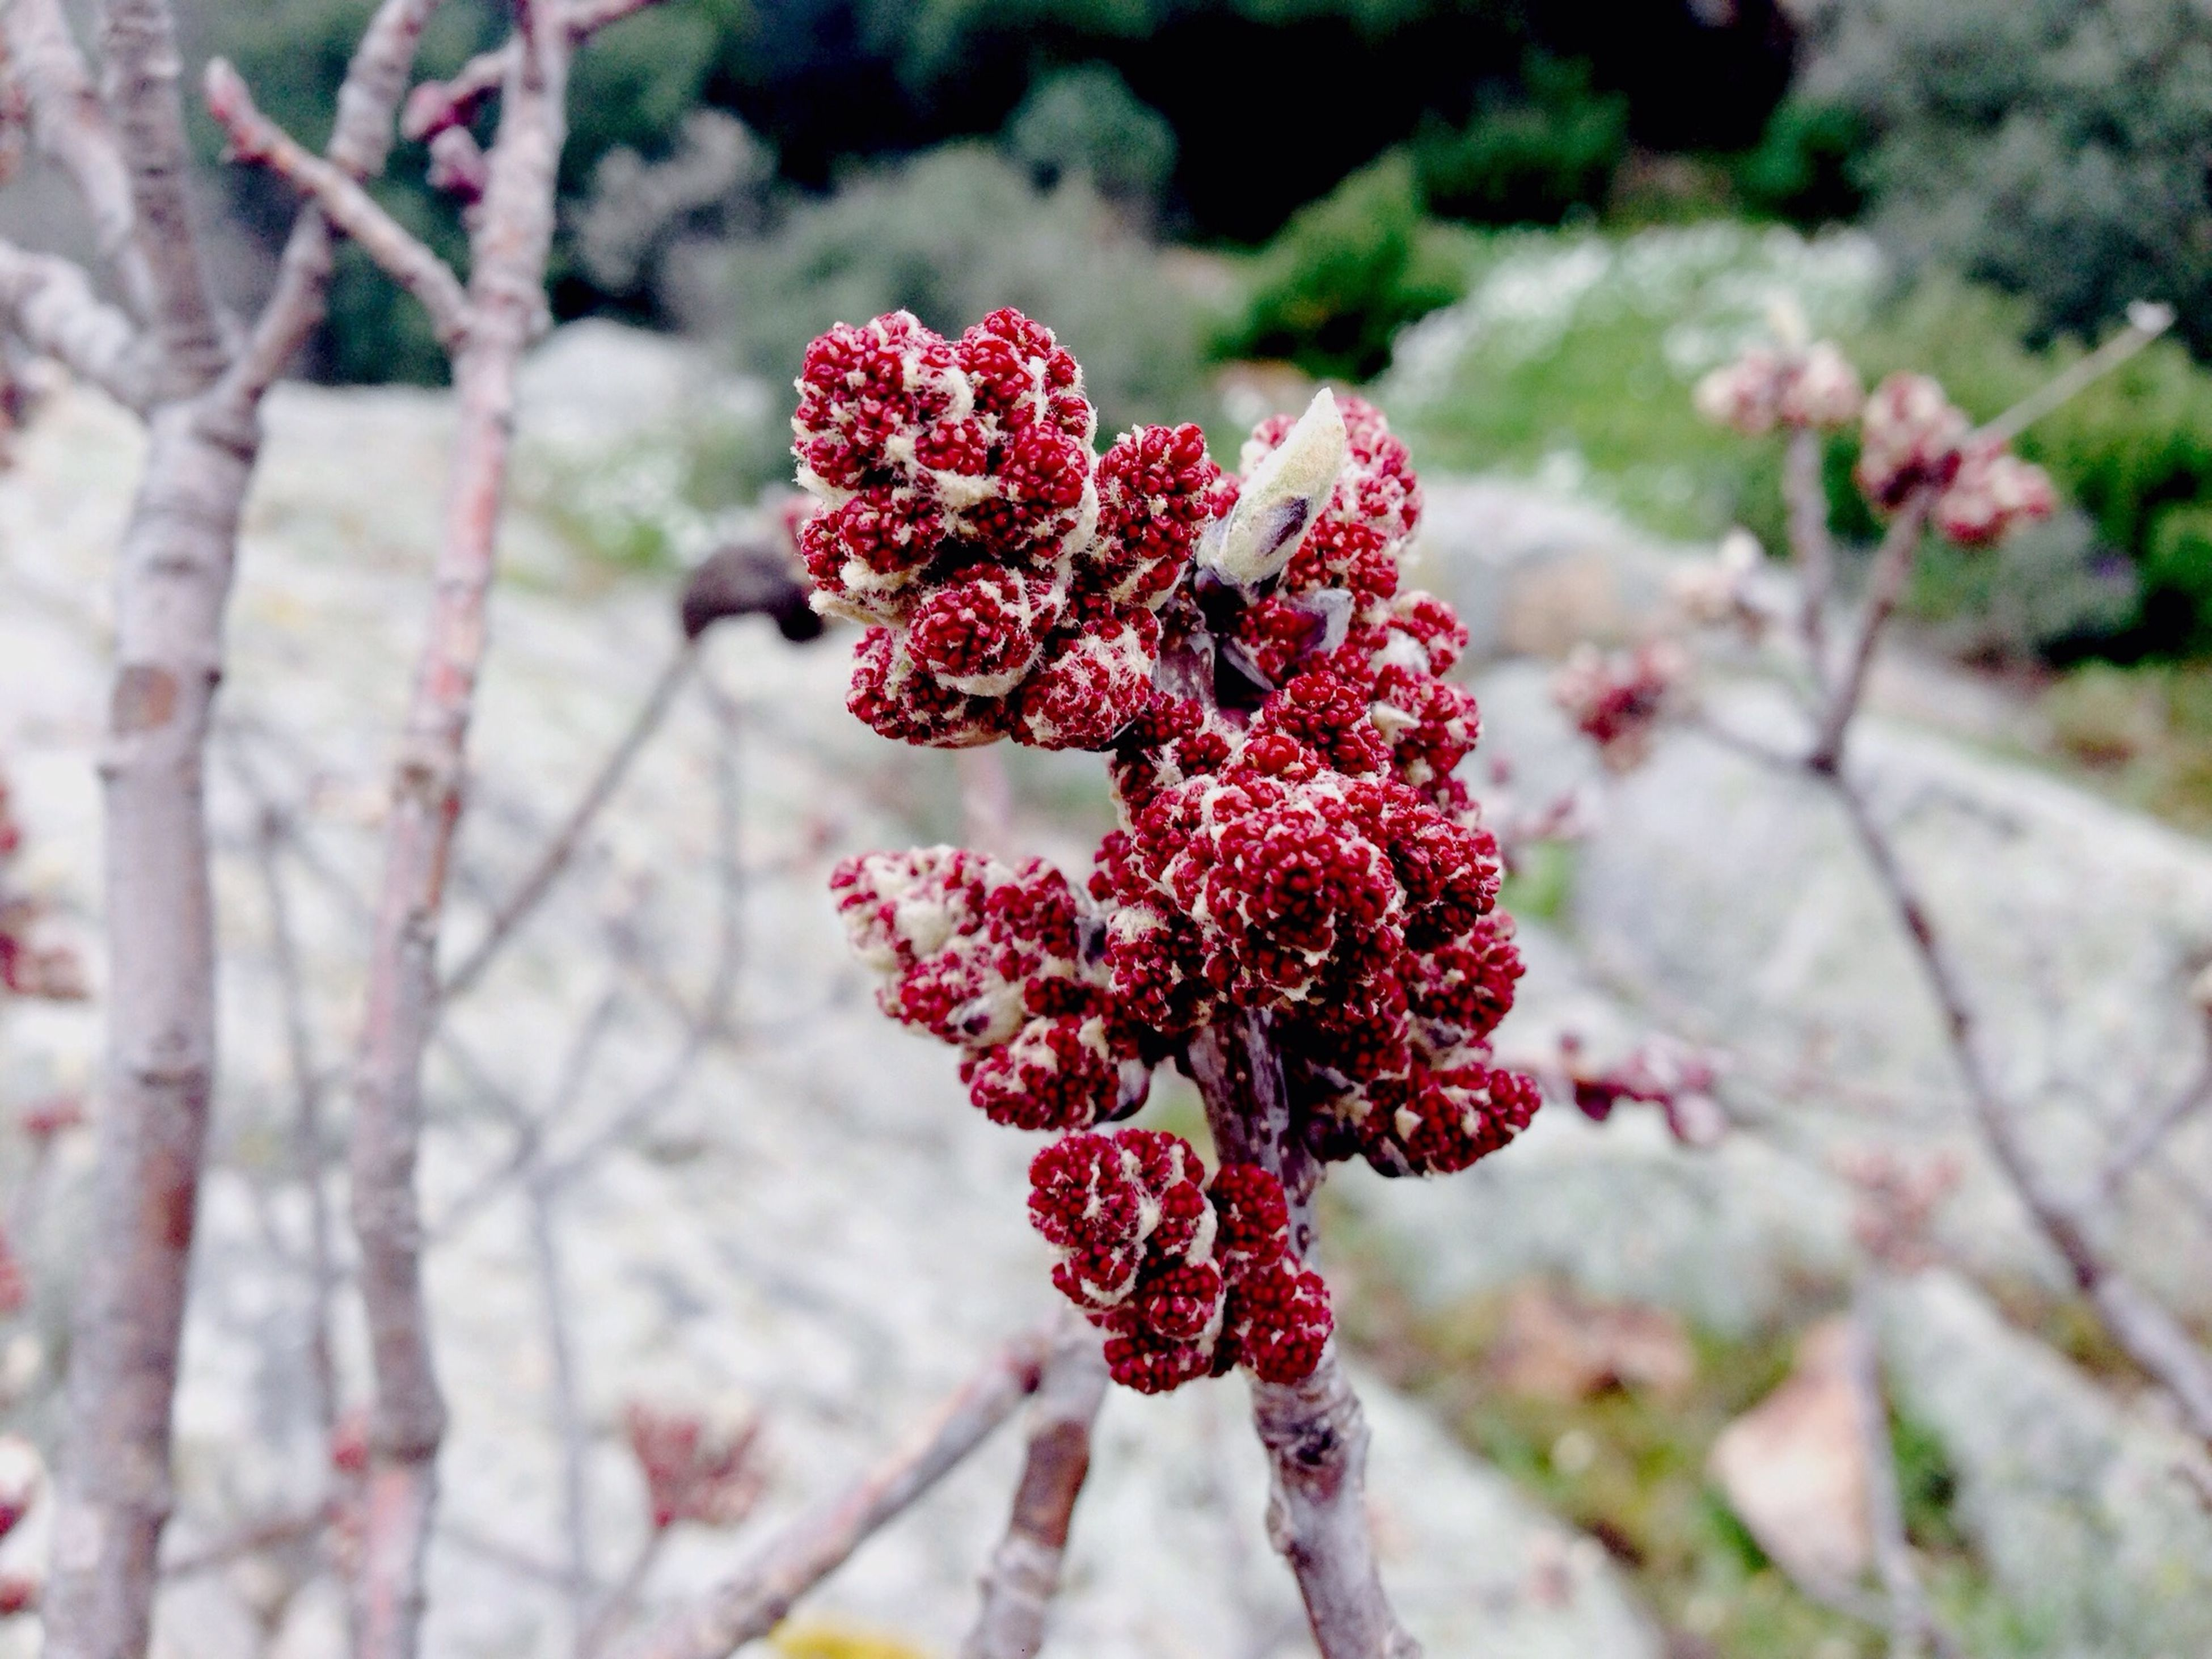 red, flower, focus on foreground, close-up, fragility, growth, freshness, nature, beauty in nature, petal, plant, branch, selective focus, day, season, tree, outdoors, no people, blooming, flower head